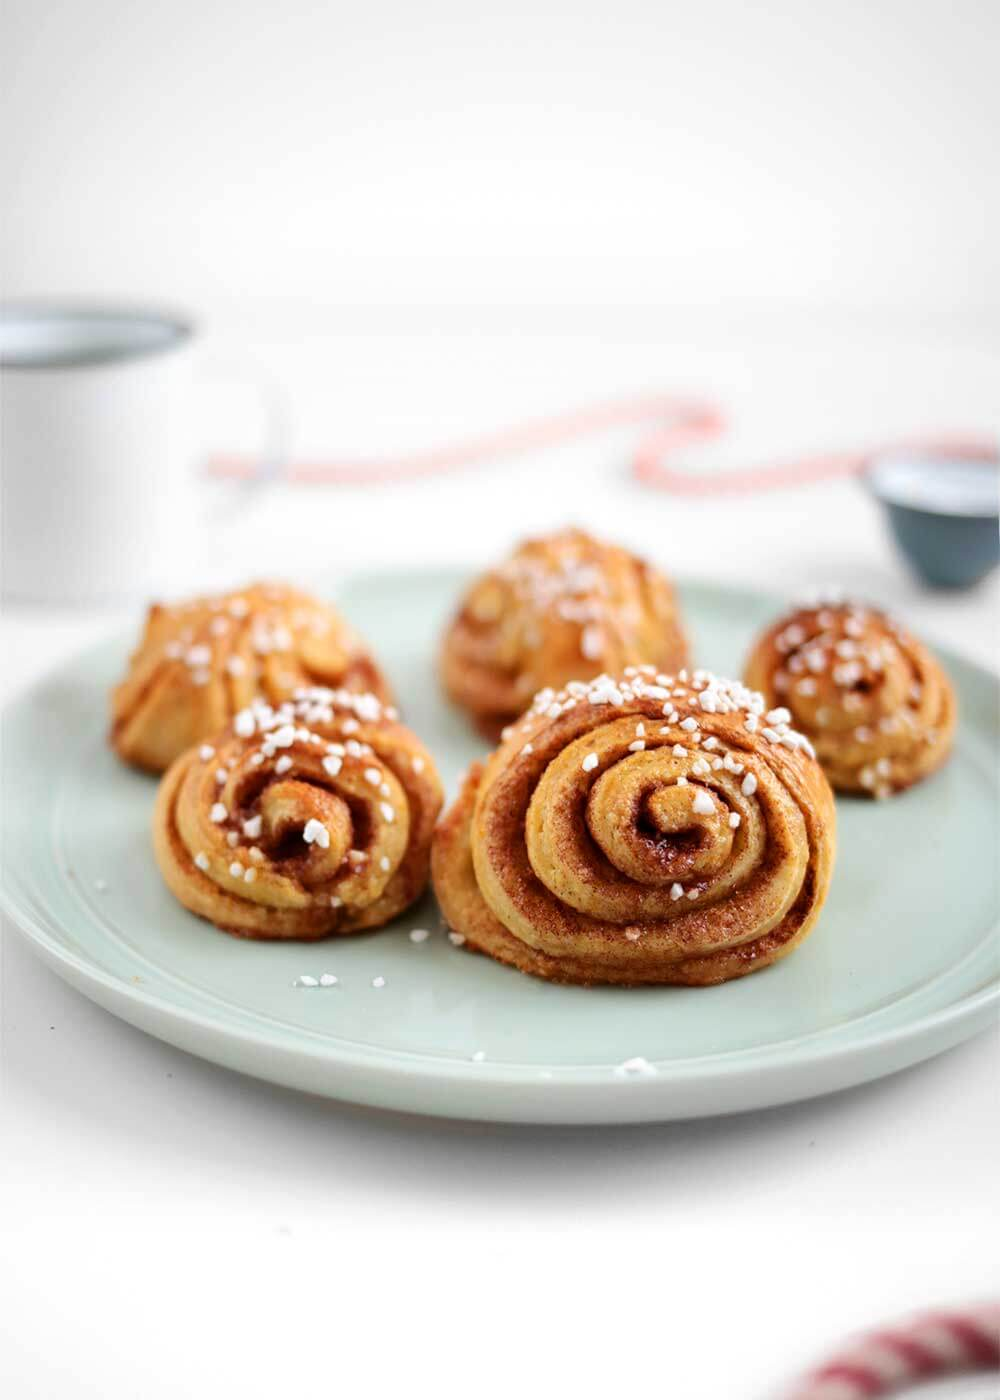 how to make Overnight Orange Cardamom Rolls from the faux martha